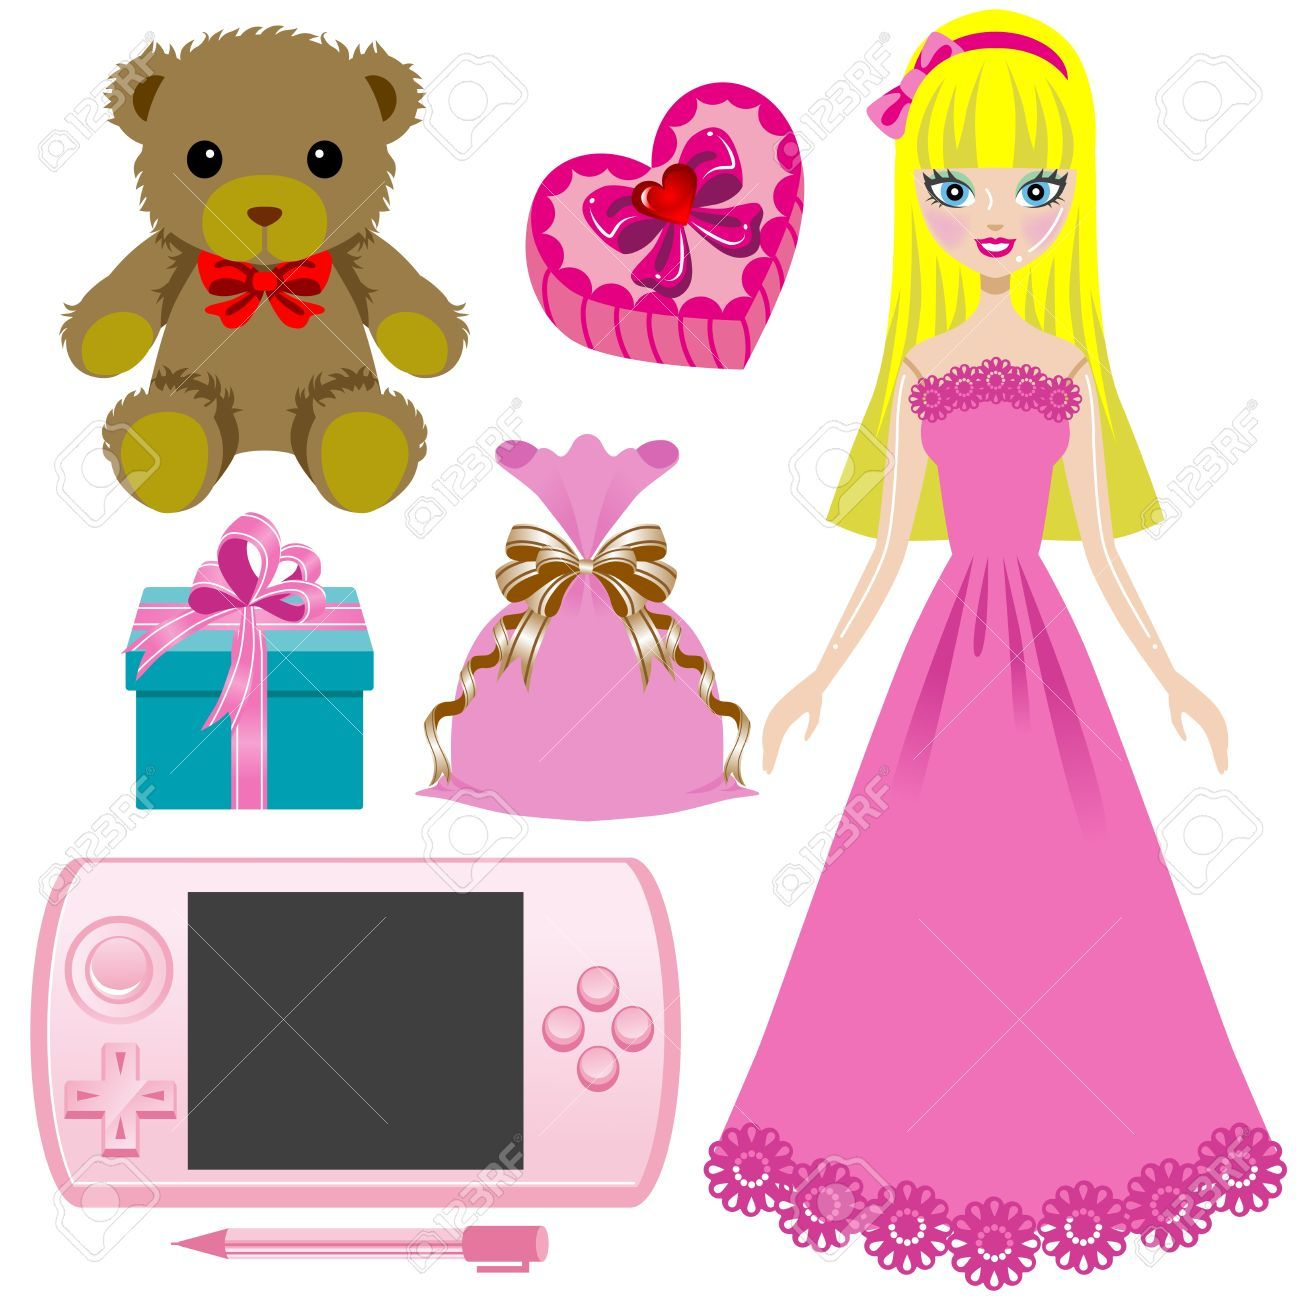 Girl toys clipart picture royalty free download Girl toys clipart 3 » Clipart Portal picture royalty free download